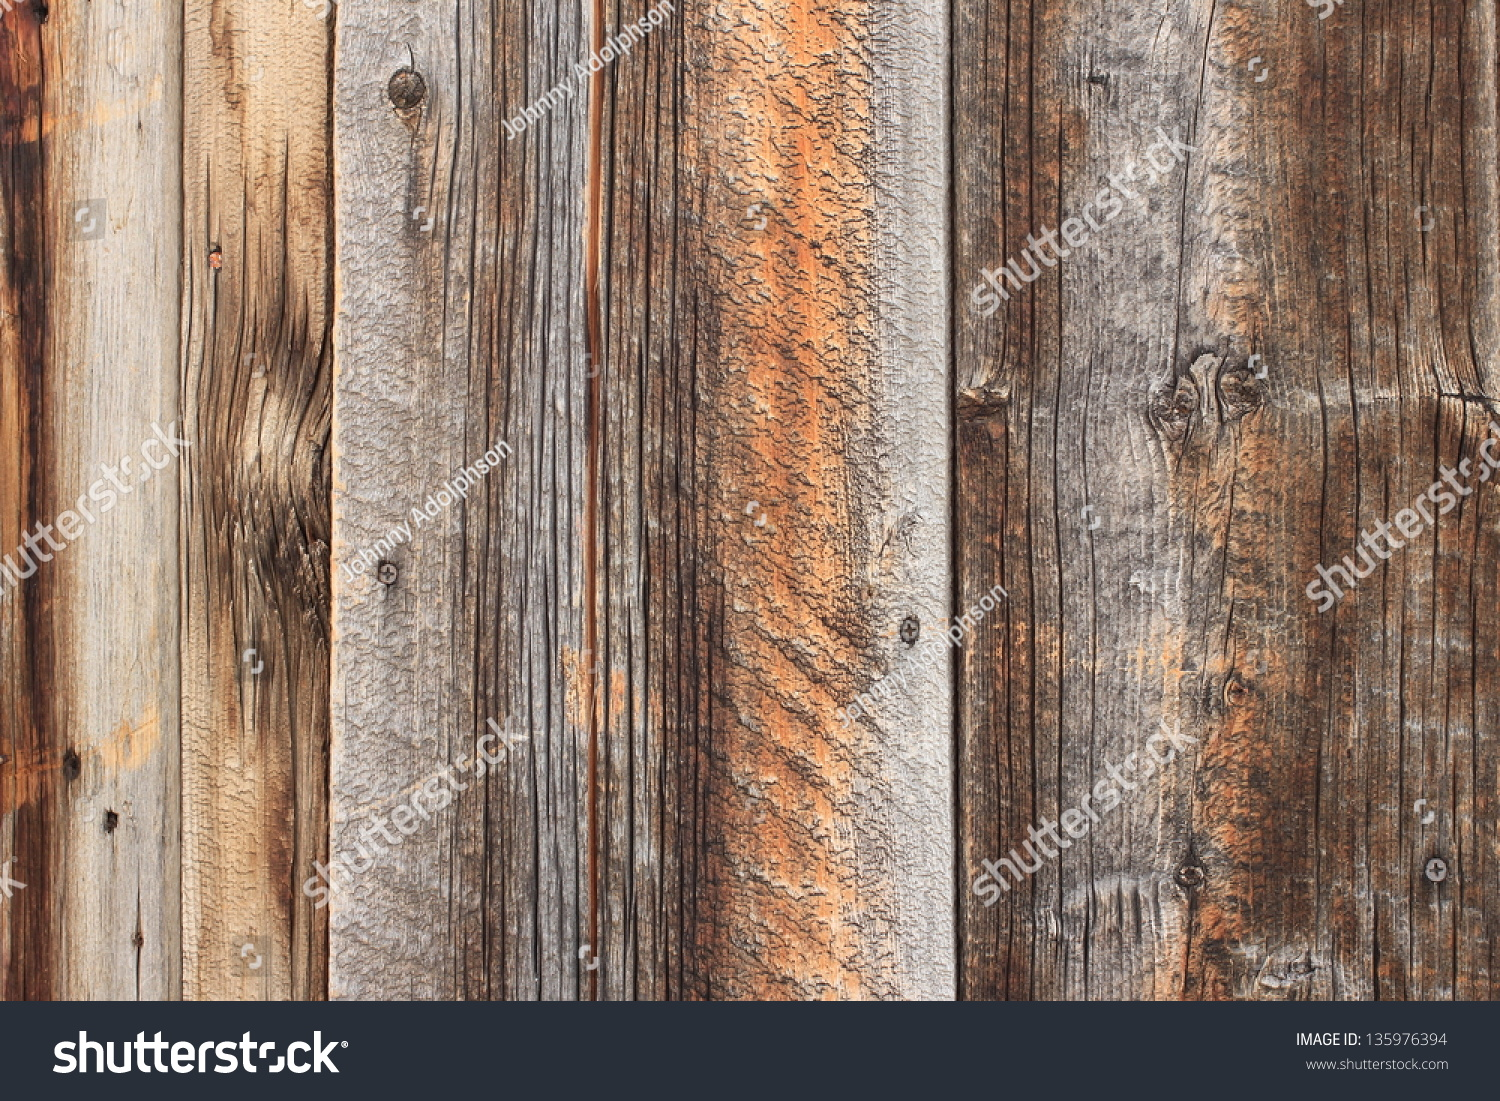 Rustic aged barn wood background stock photo